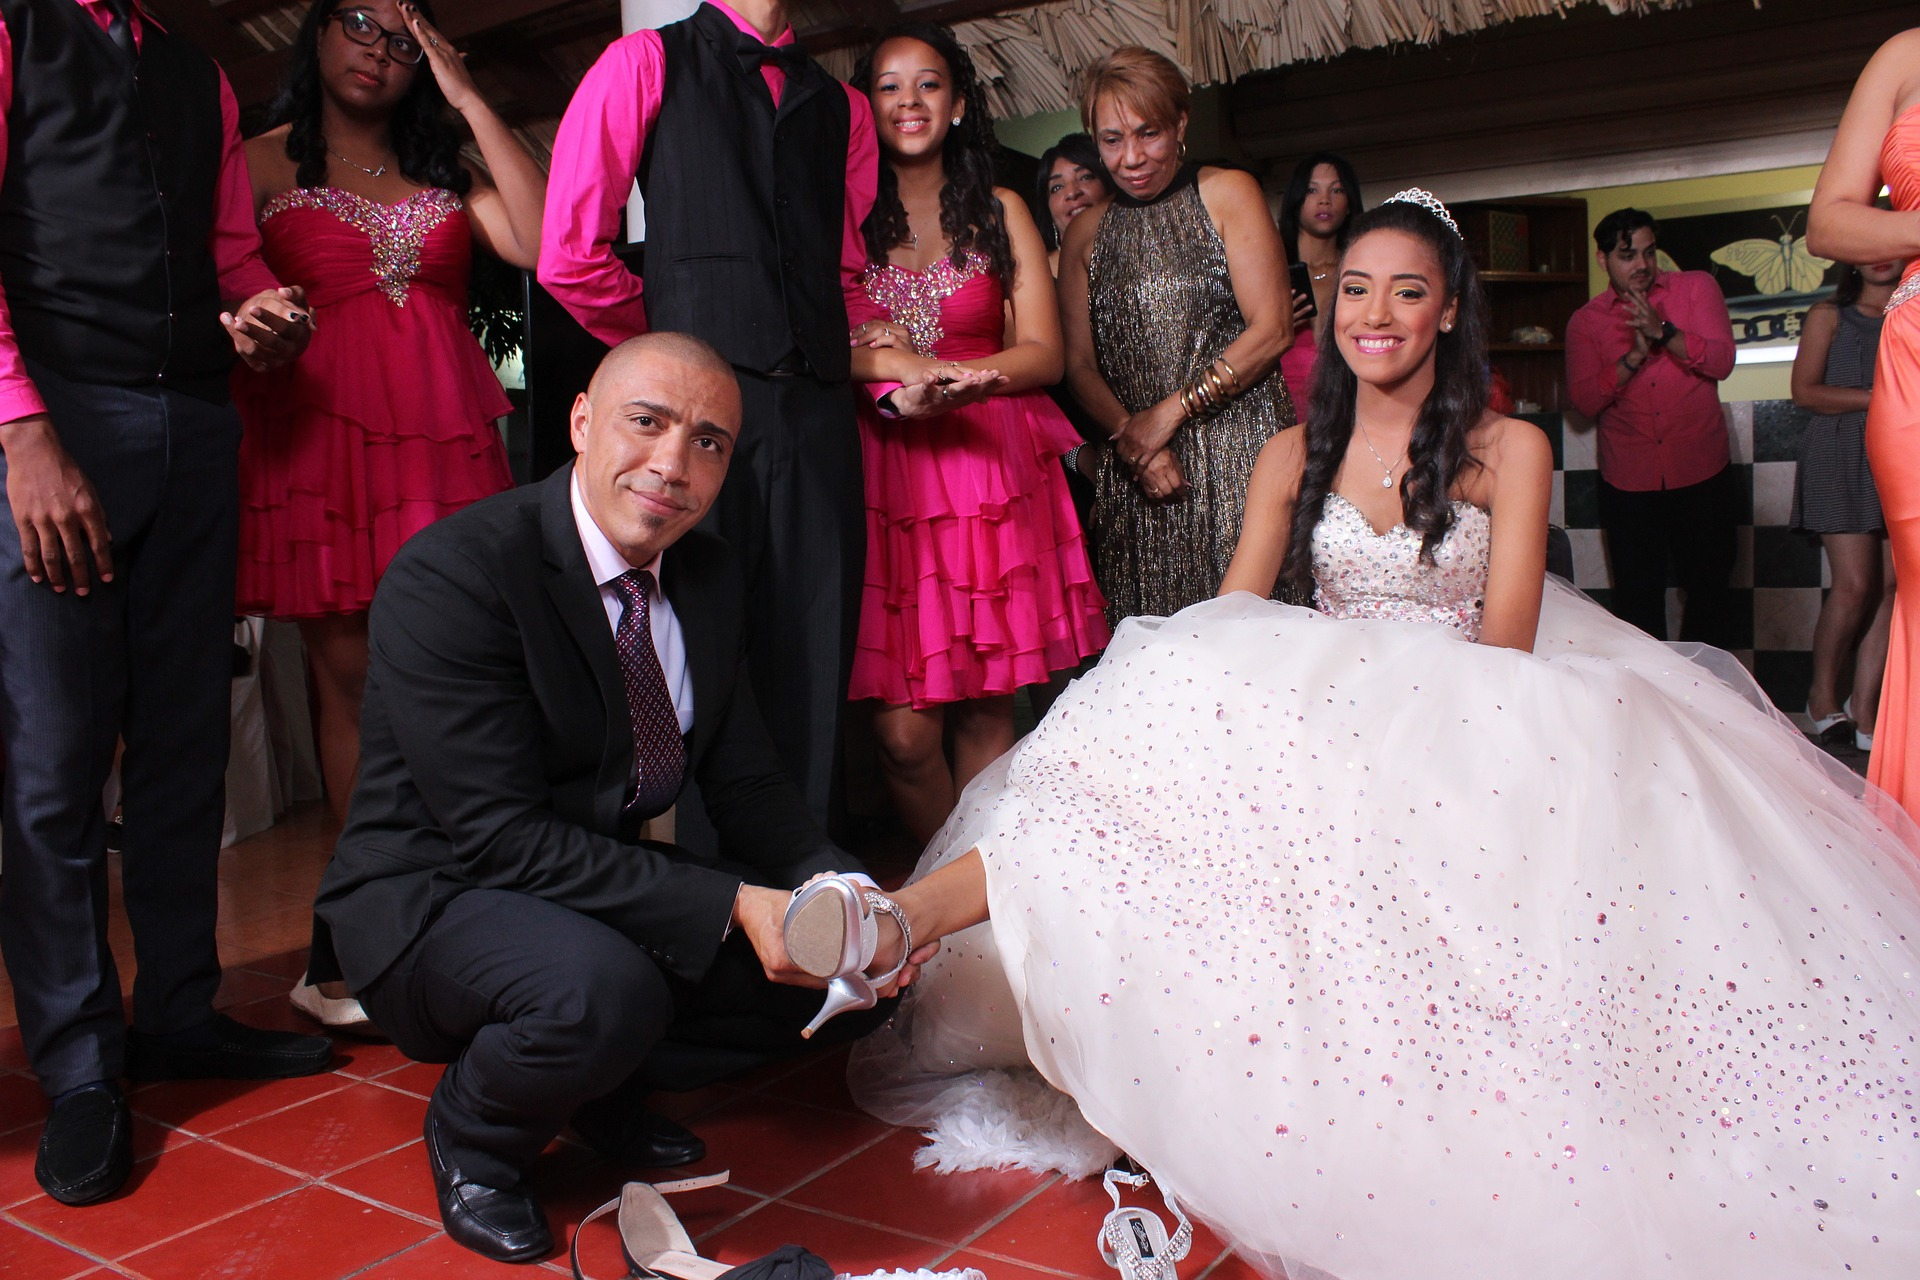 Gift Ideas for a Quinceañera 2019  sc 1 st  Considered Gifts & Gift Ideas for a Quinceañera 2019 | Considered Gifts